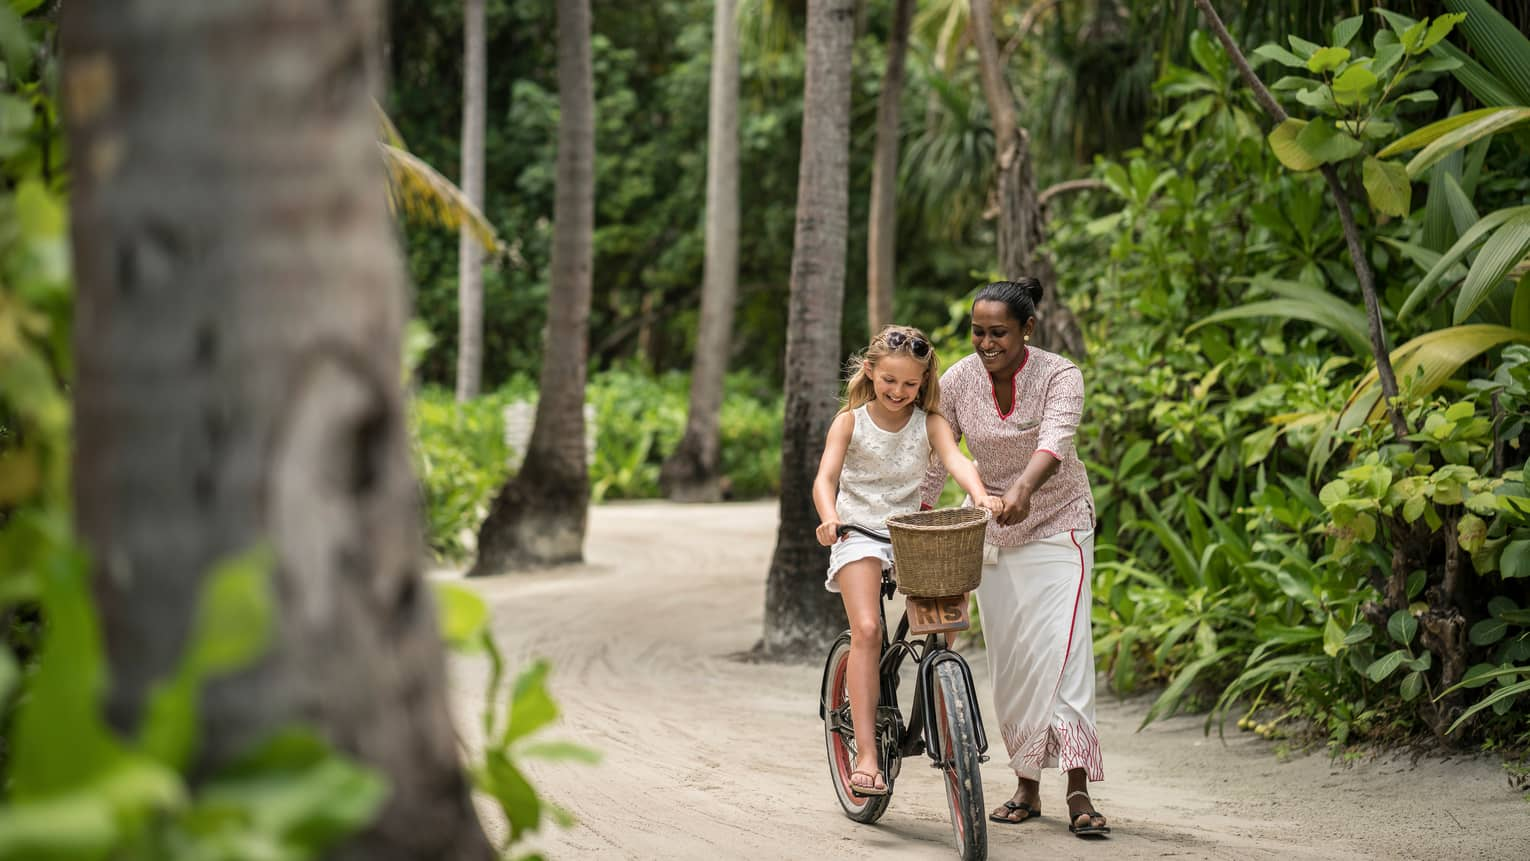 Hotel staff helps young girl ride bicycle with woven basket on tropical resort path